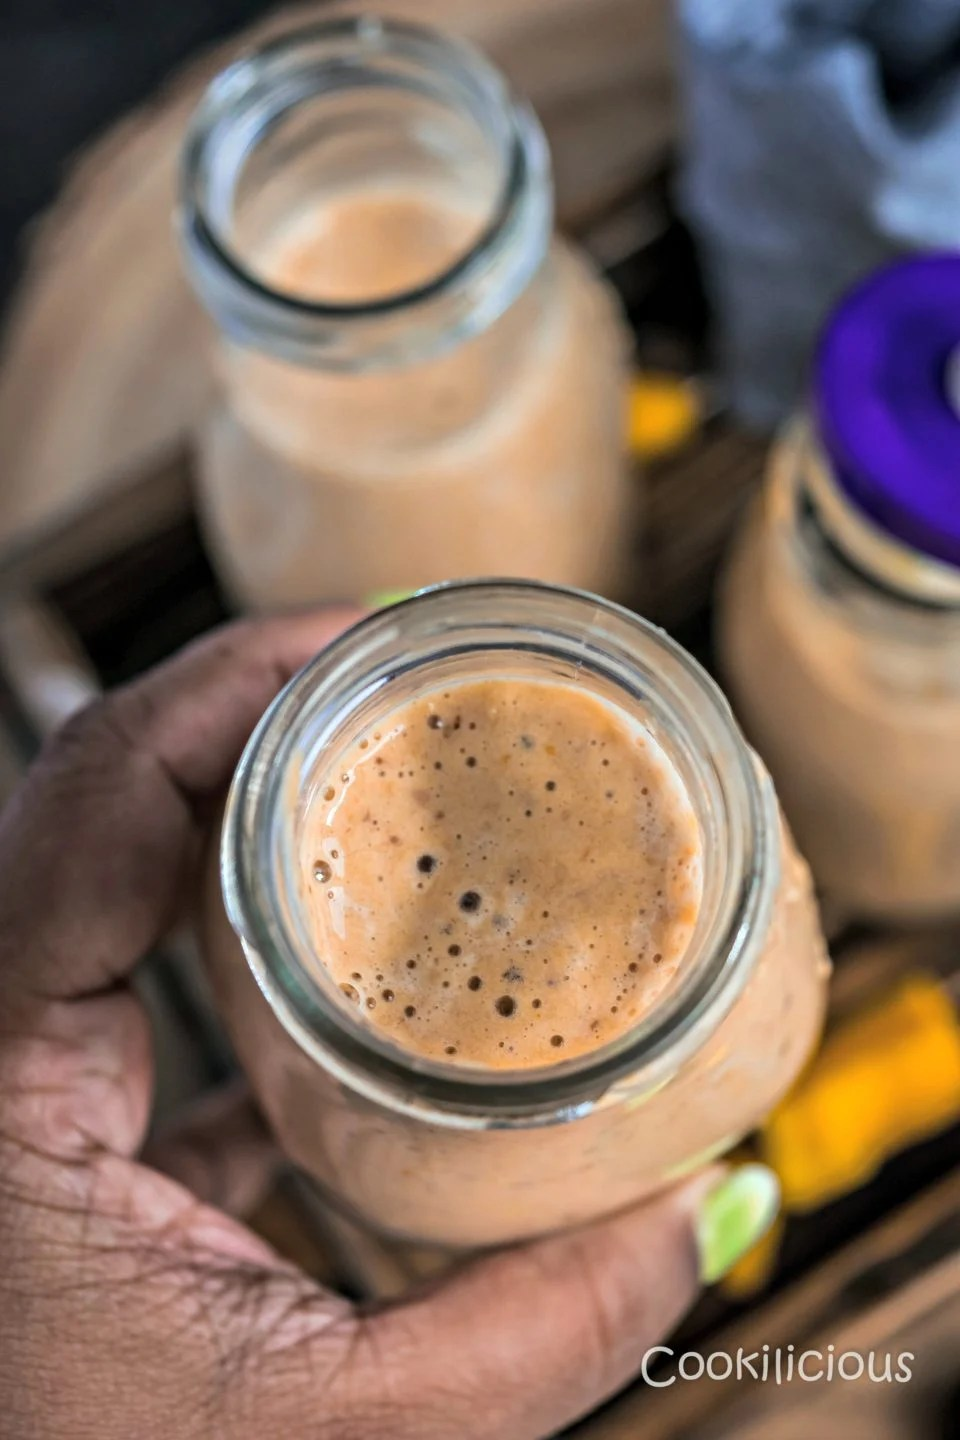 A hand holding a glass of Dairy Free Mango Figs & Apricot Power Smoothie